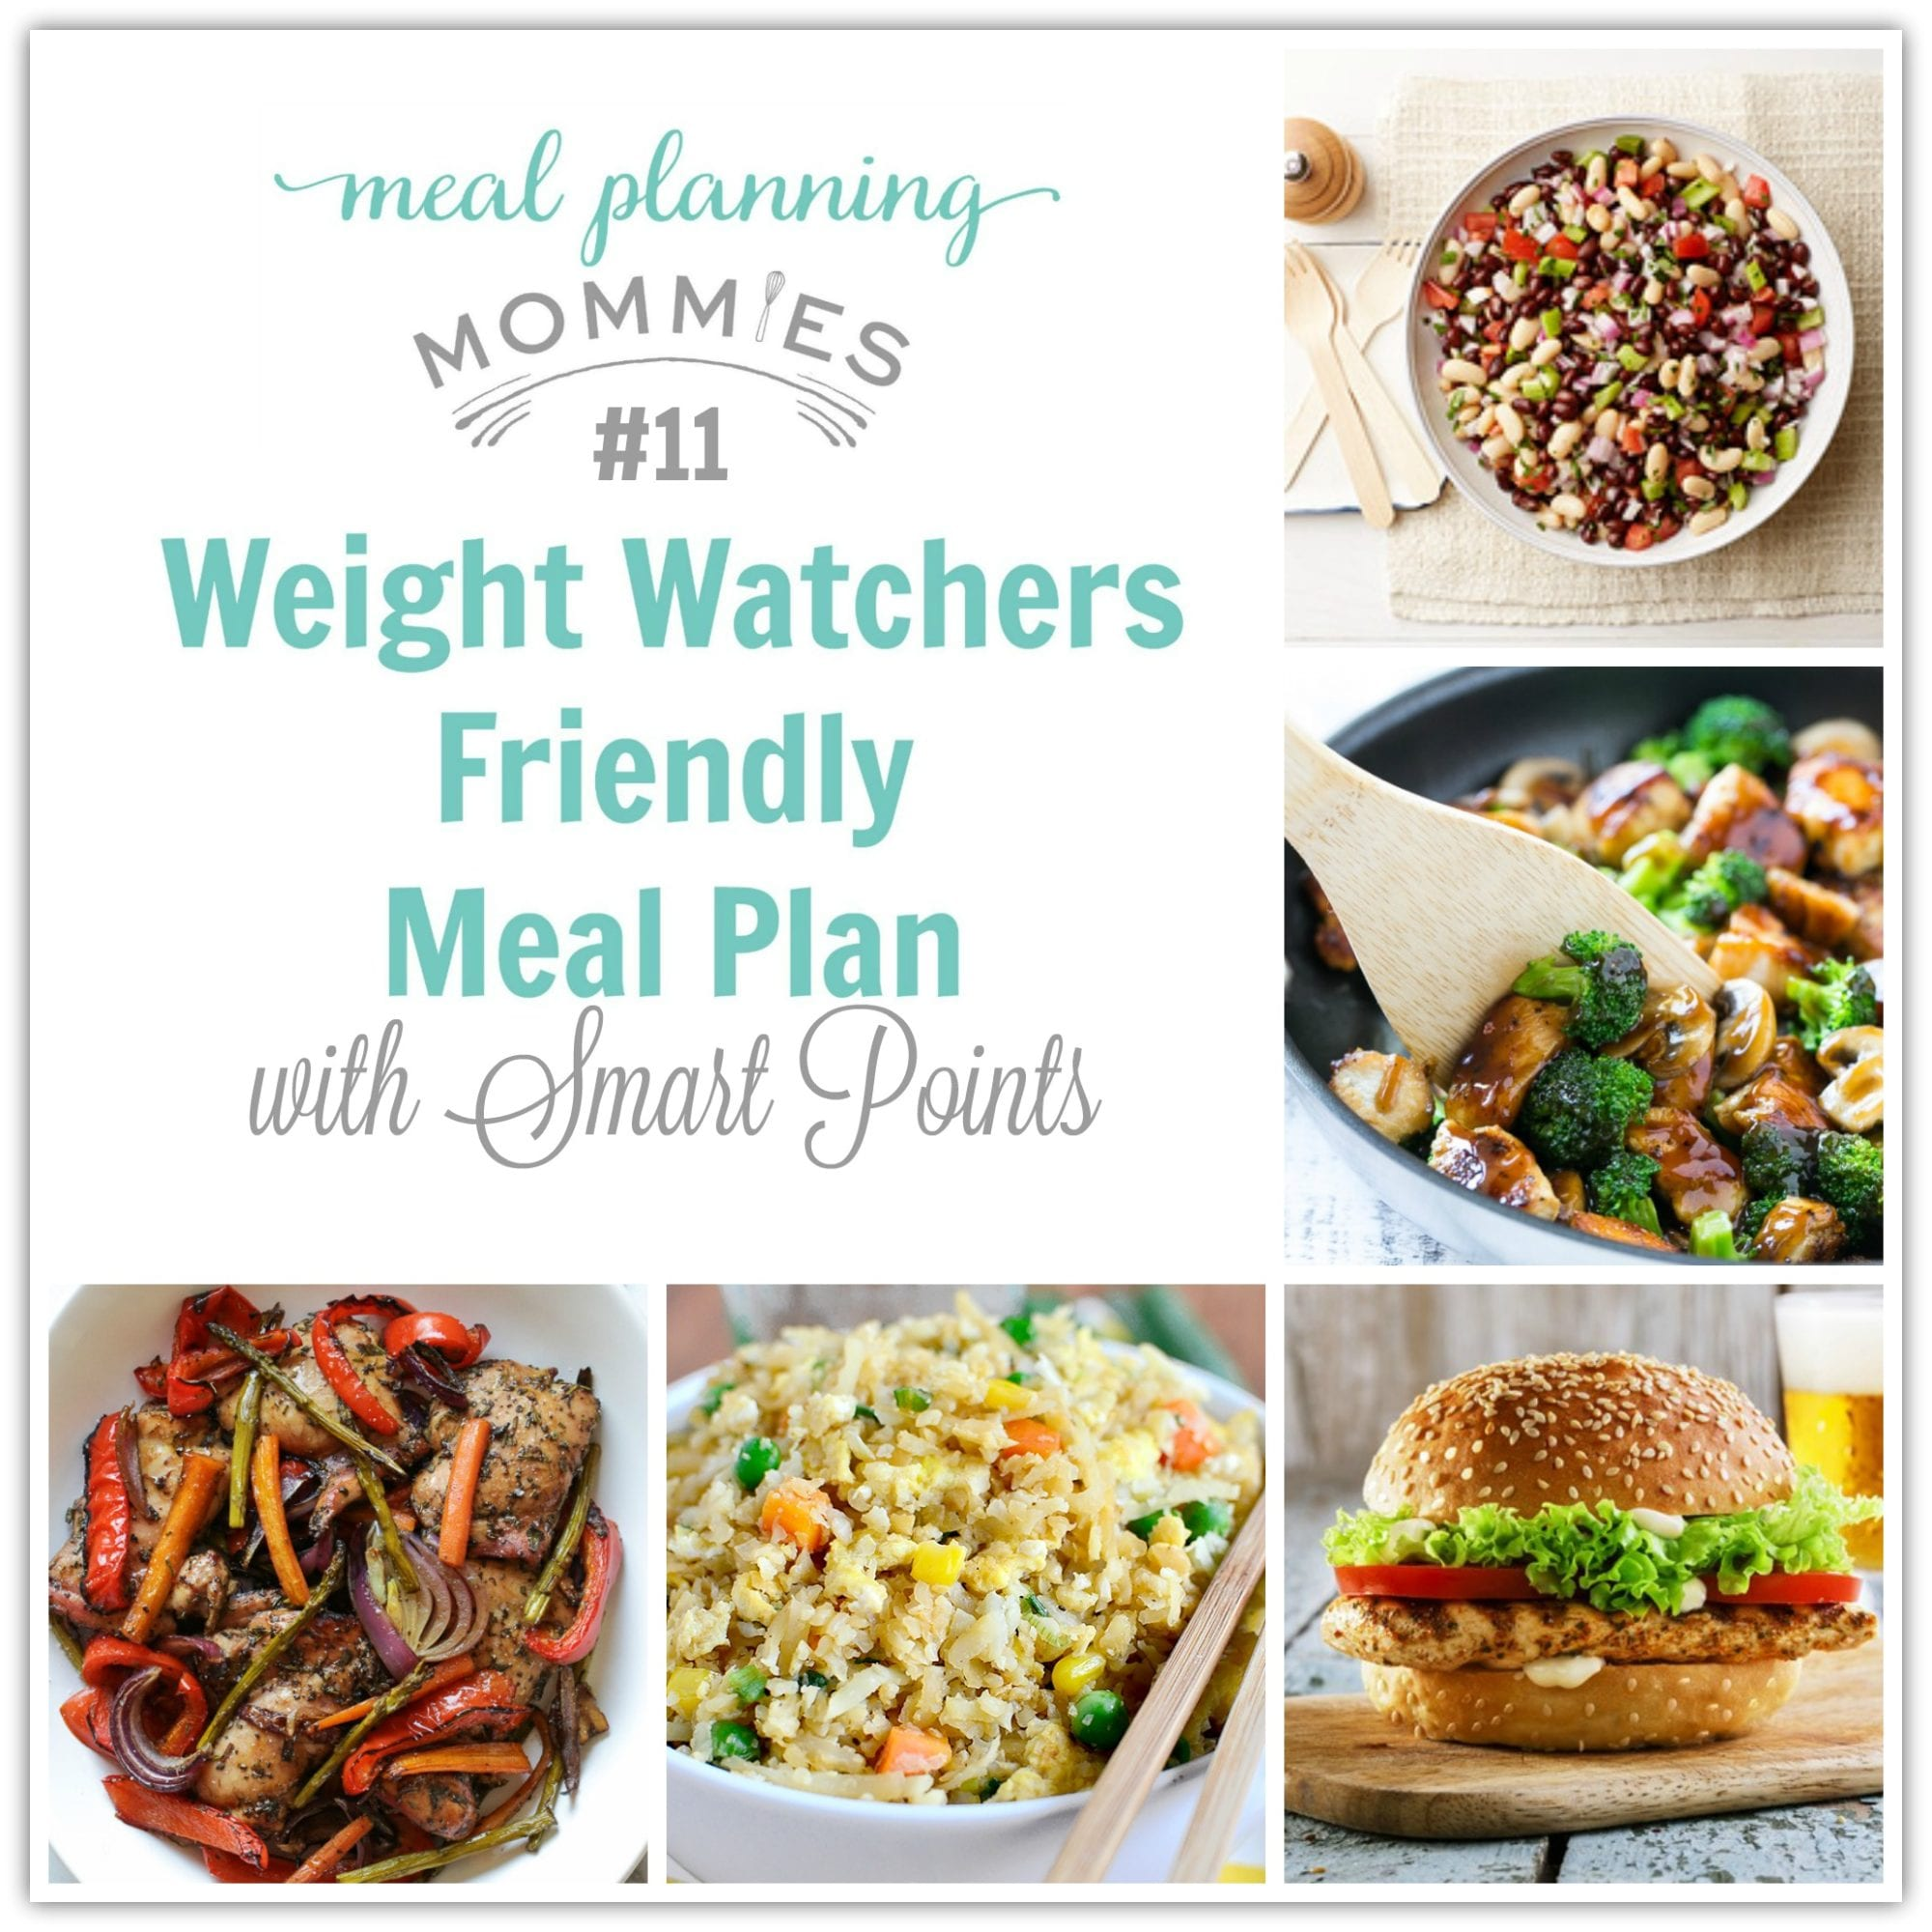 Weight Watcher Meal Plan With Smart Points 11 With Old